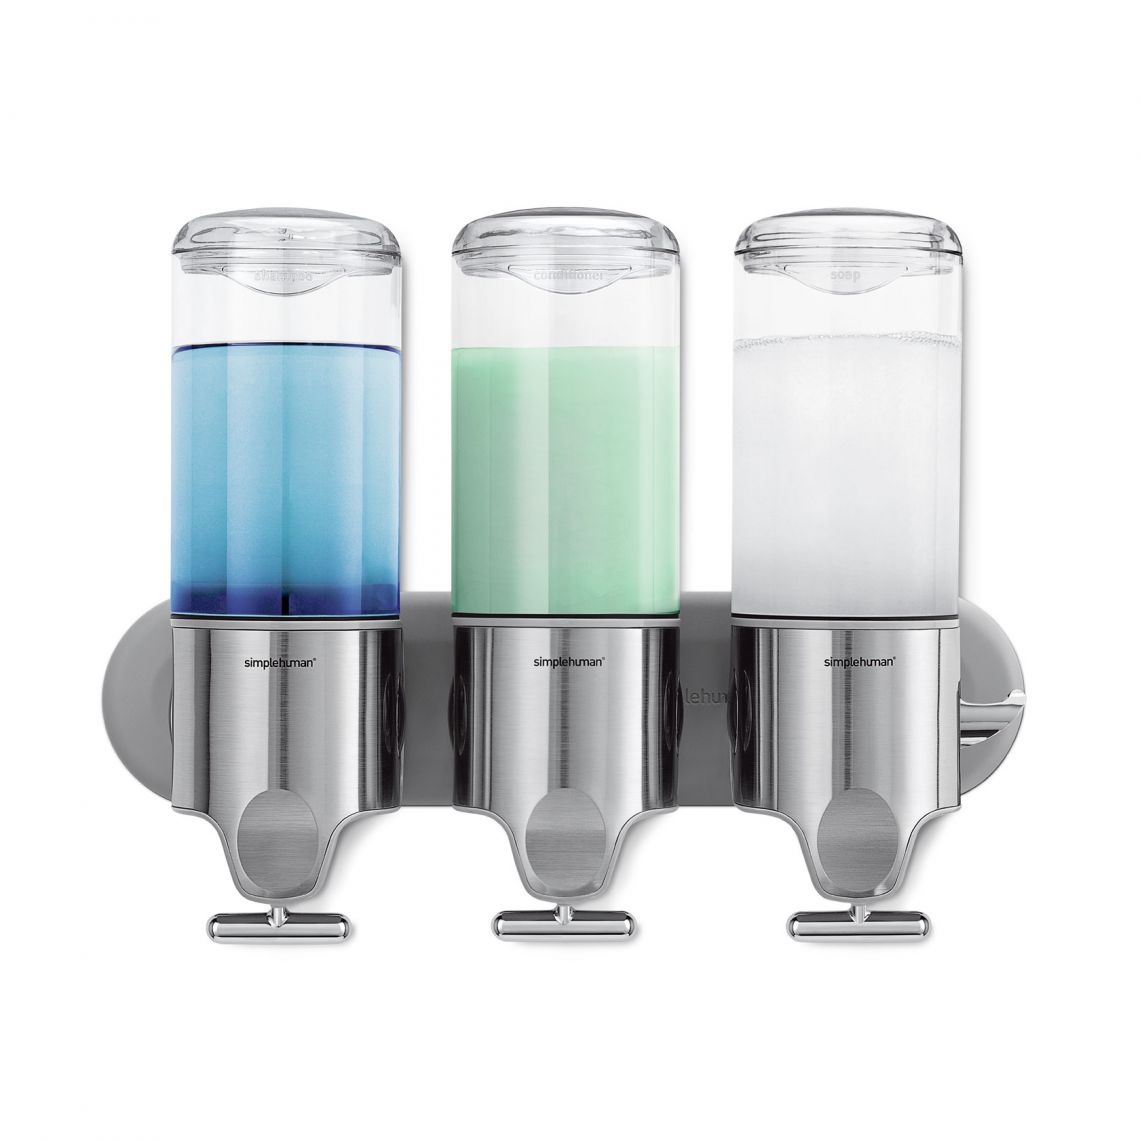 TripleWall Mount Soap Dispenser